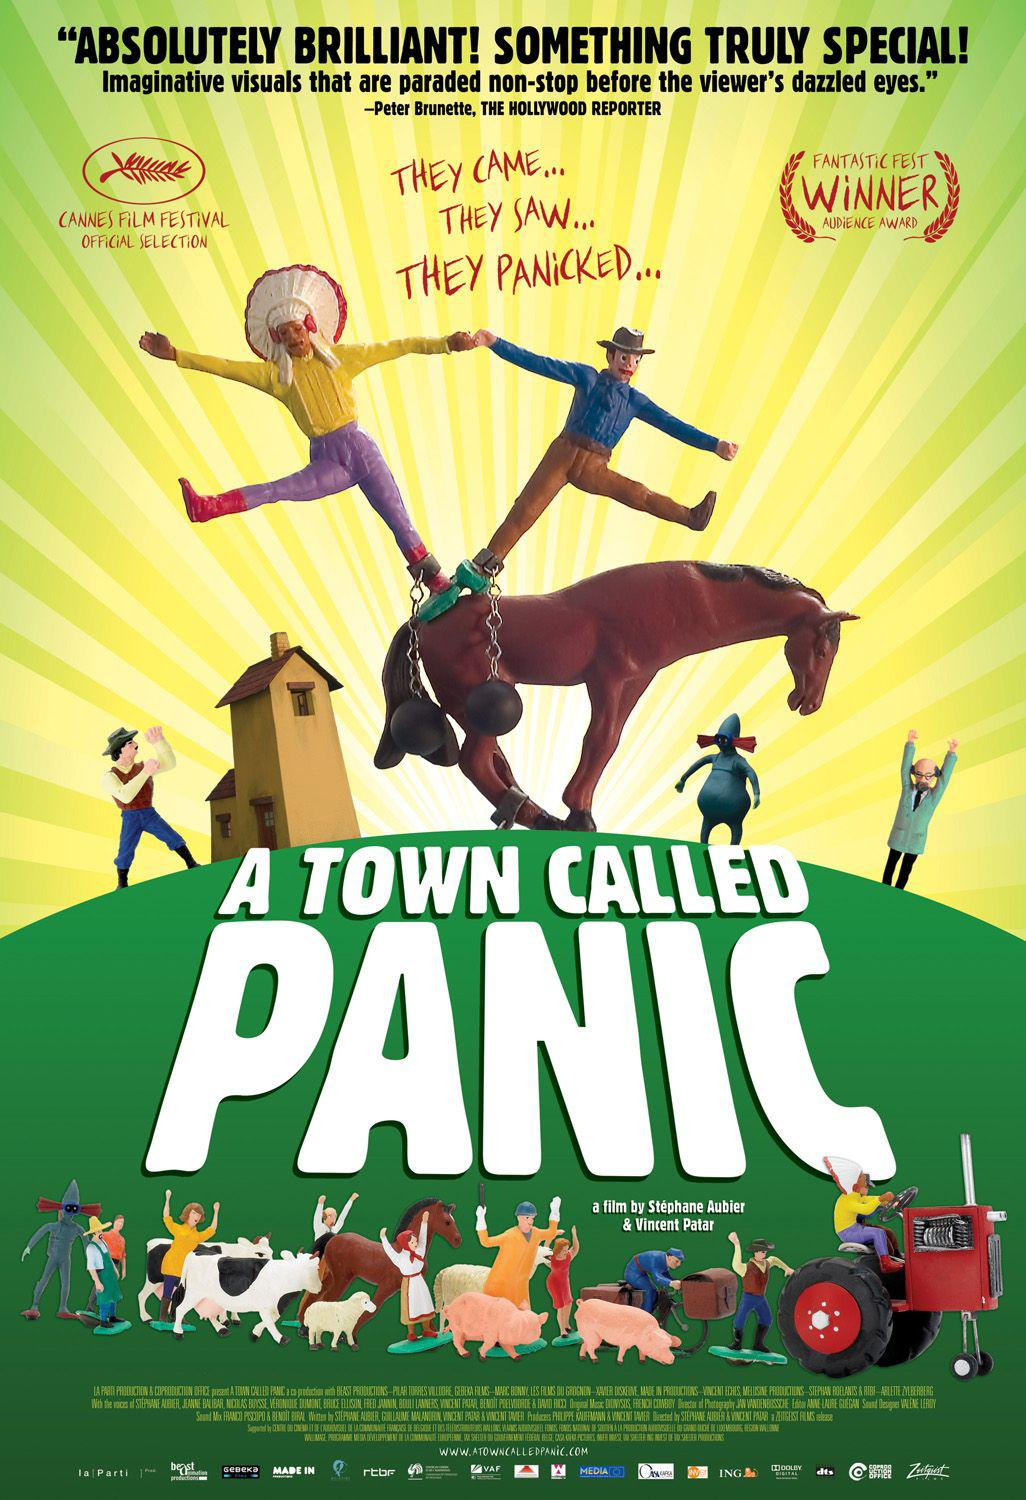 Town called Panic - imaginative visuals that are paraded non-stop before the viewer's dazzled eyes